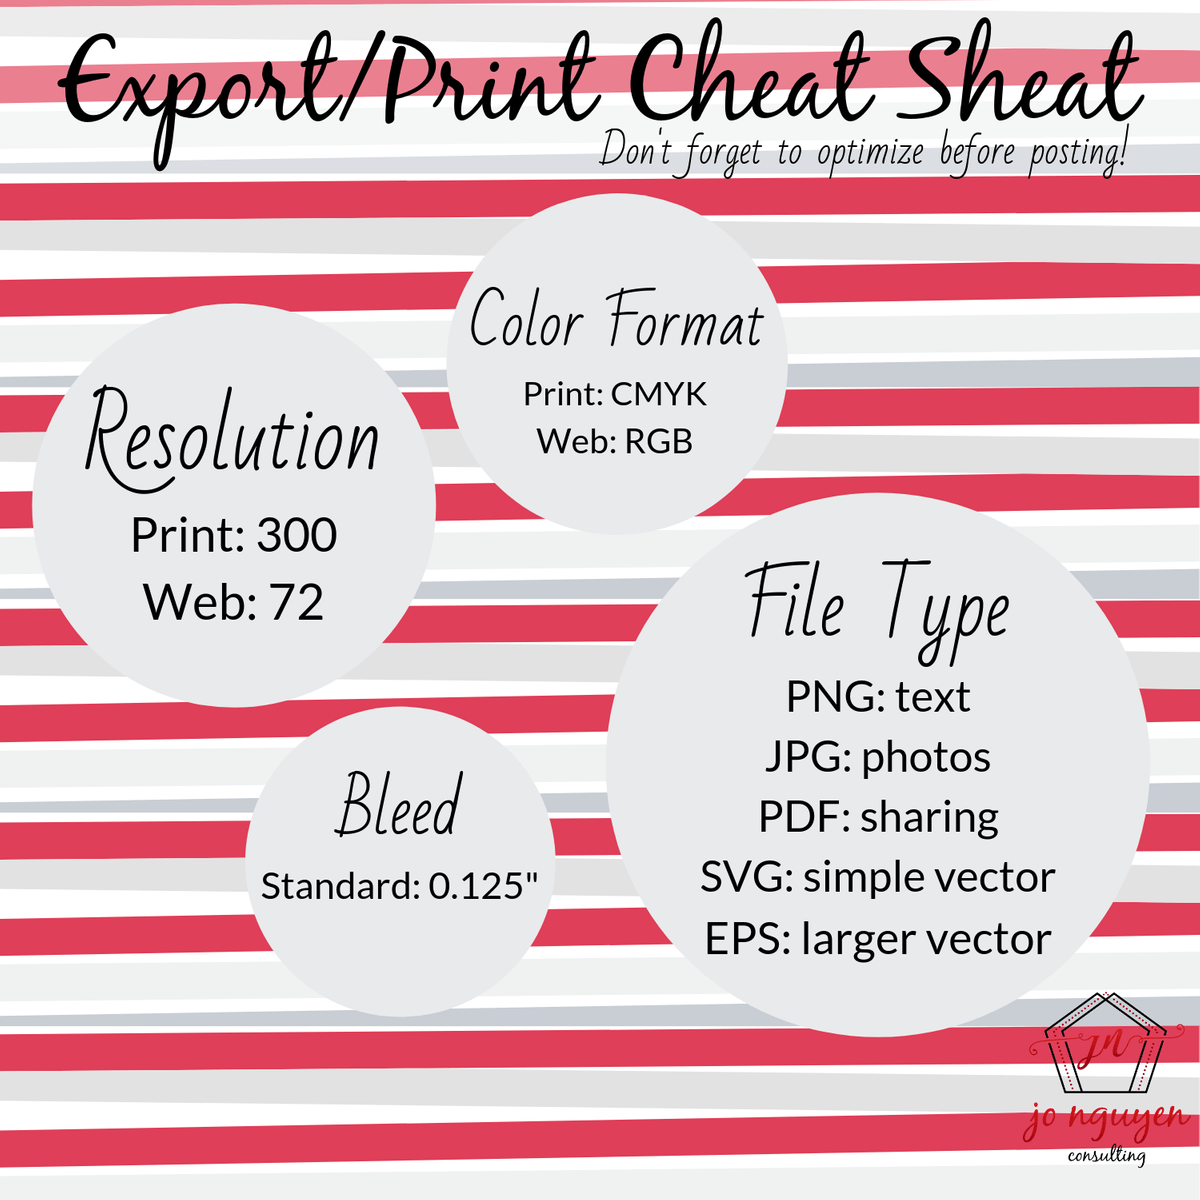 Jo Nguyen Consulting: Export/Print Cheat Sheet